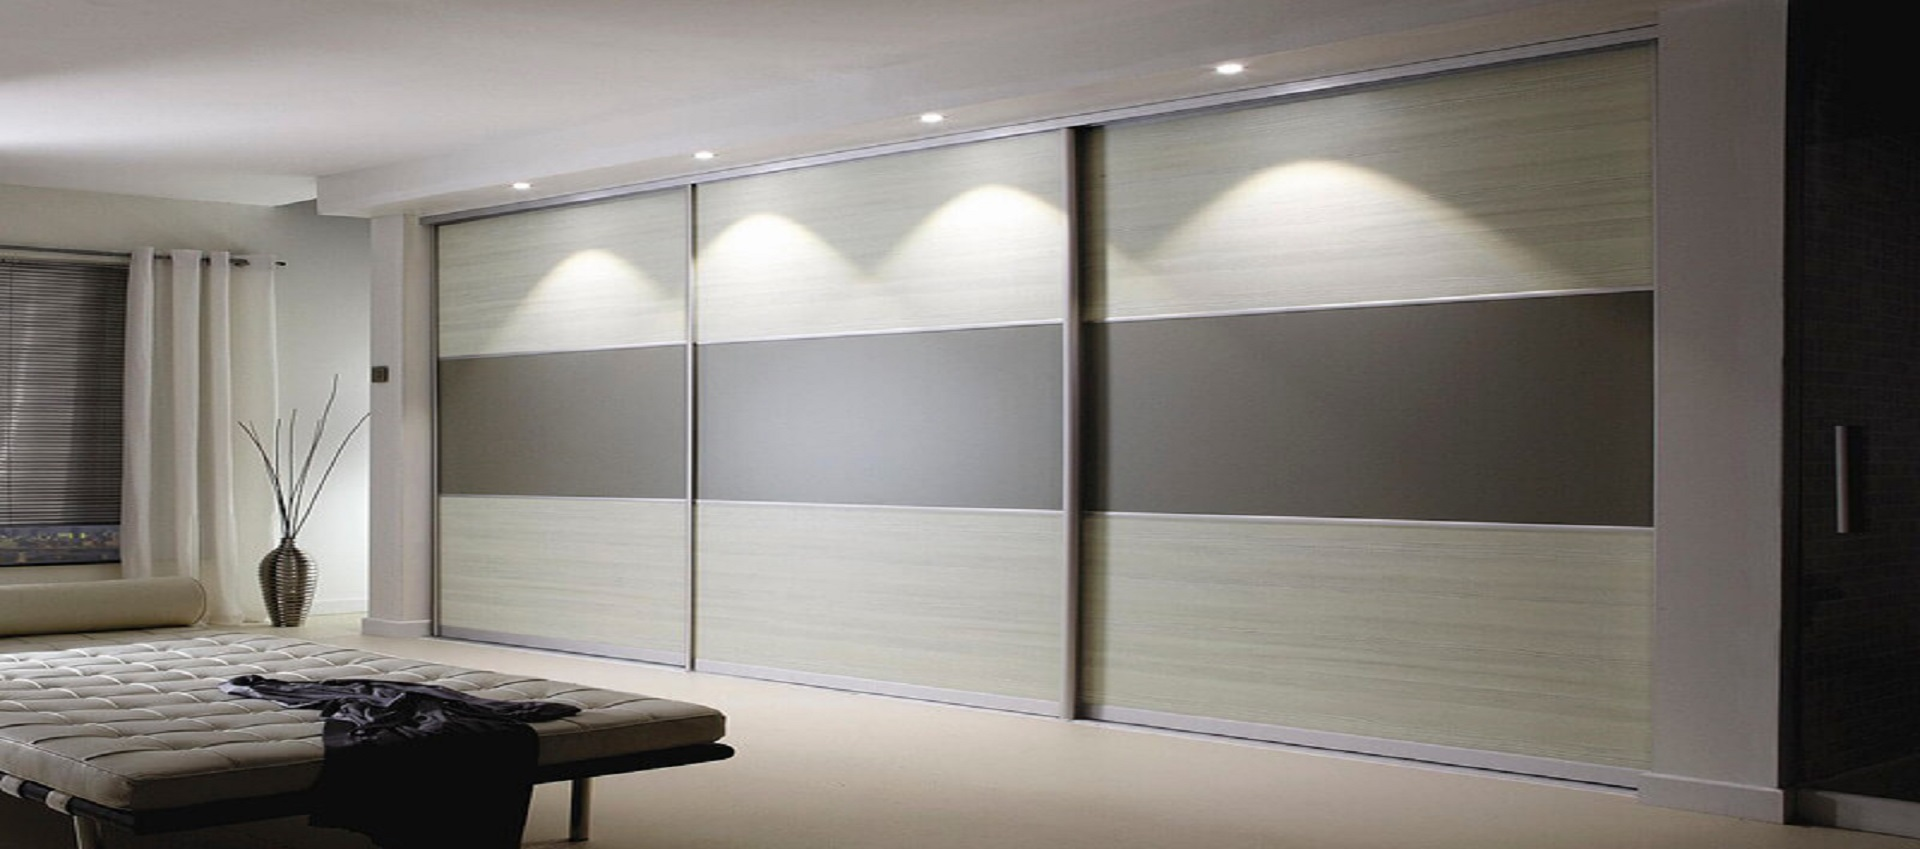 Sliding wardrobes_Perfect For The Bedroom